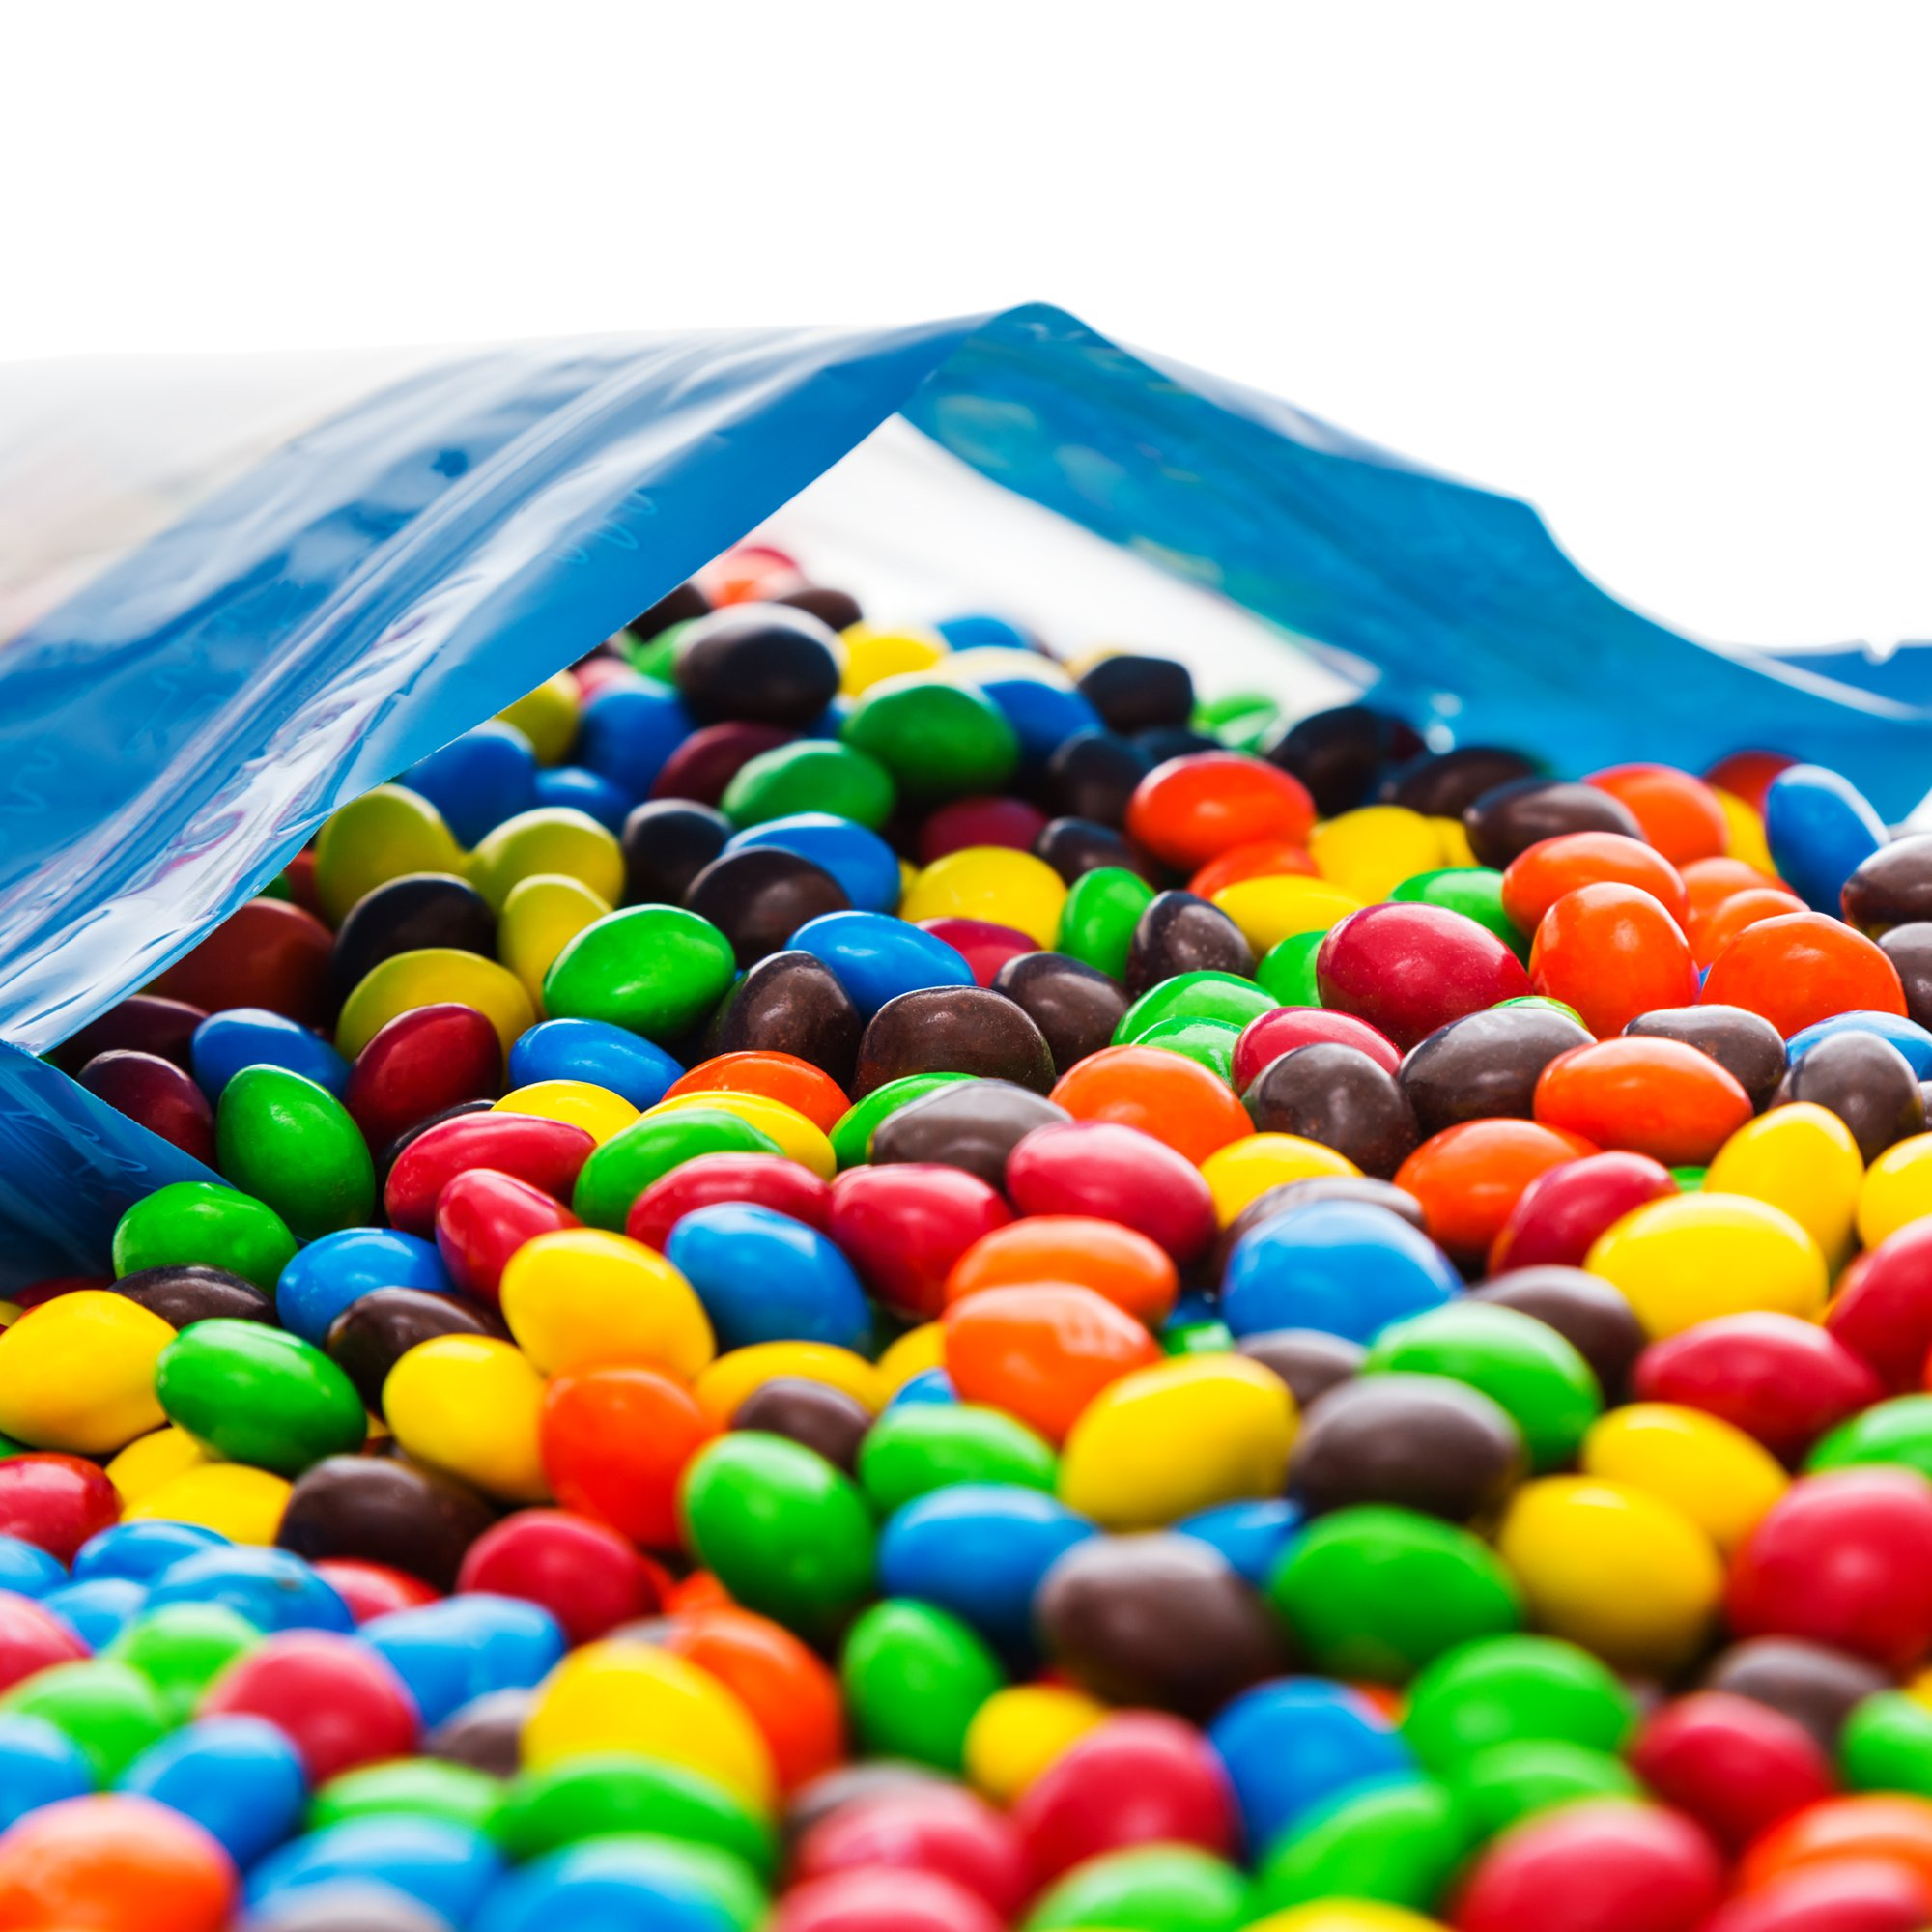 Bulk M&M's Plain Milk Chocolate in a Bomber® Bag - 5 lbs - Fresh, Tasty Treats - Resealable Bag by Fast Fresh Nuts (Image #2)